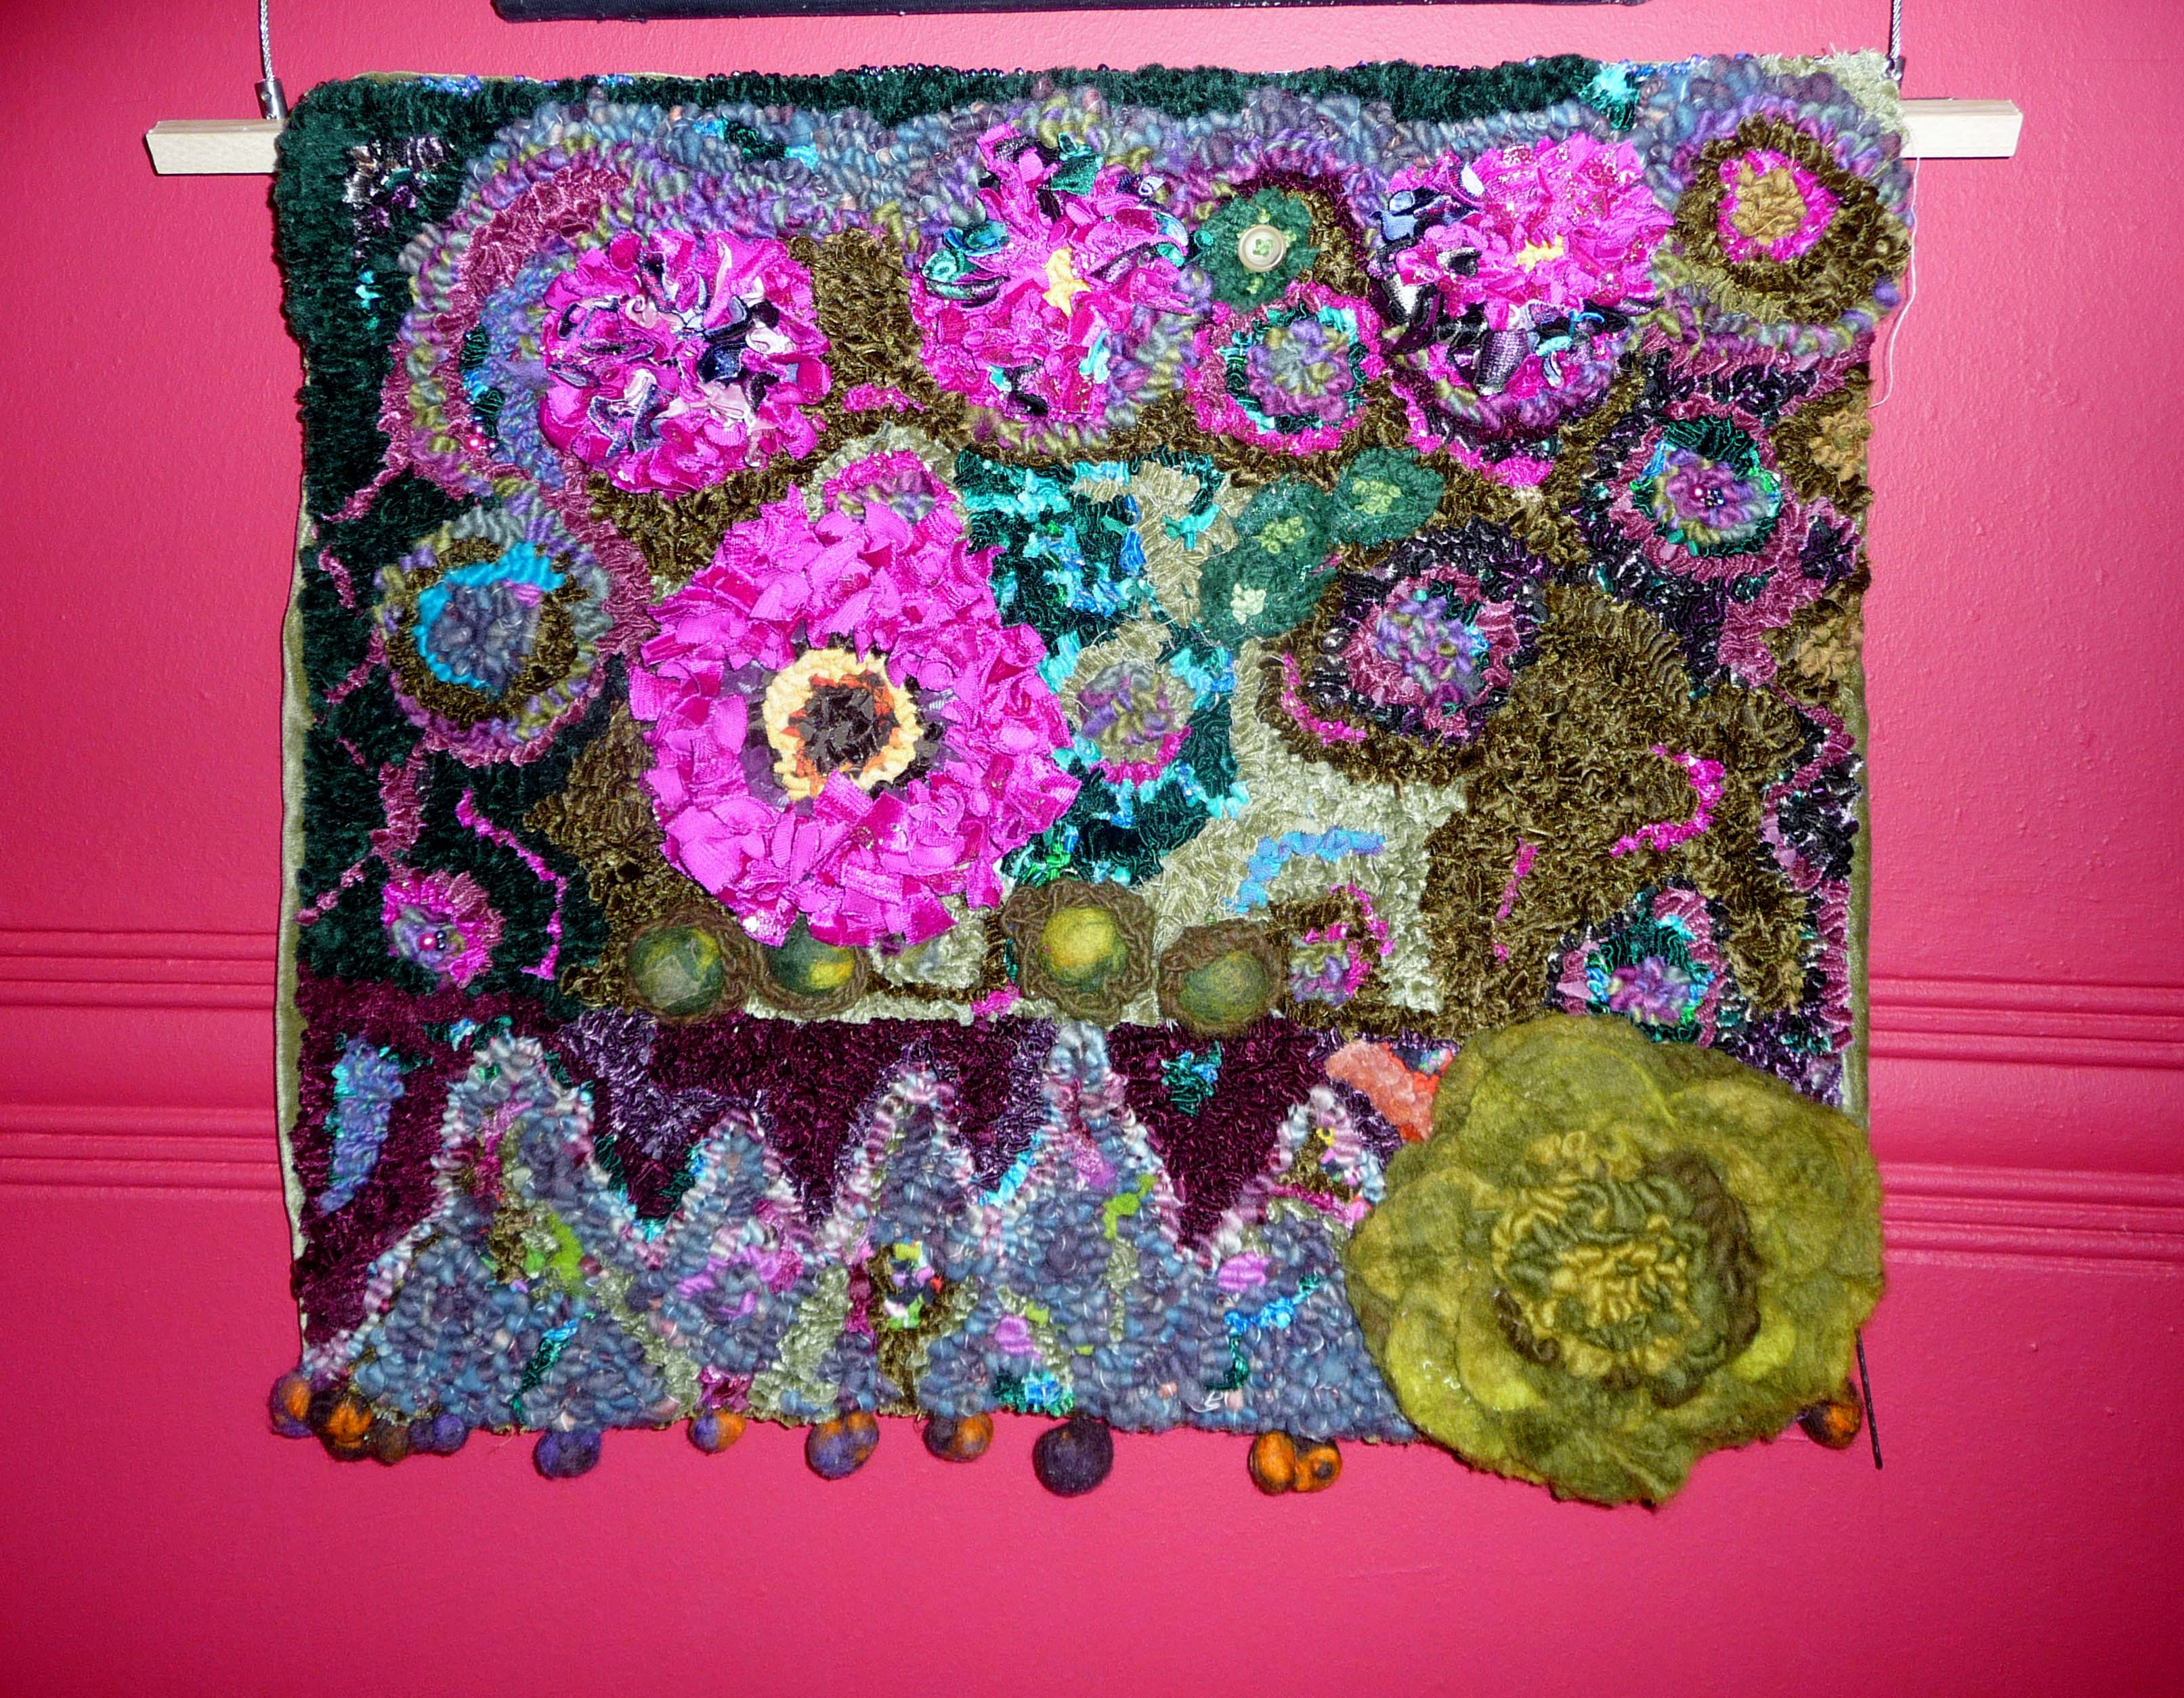 ALLOTMENT, 2014, by June Howard, rag rugging and beads